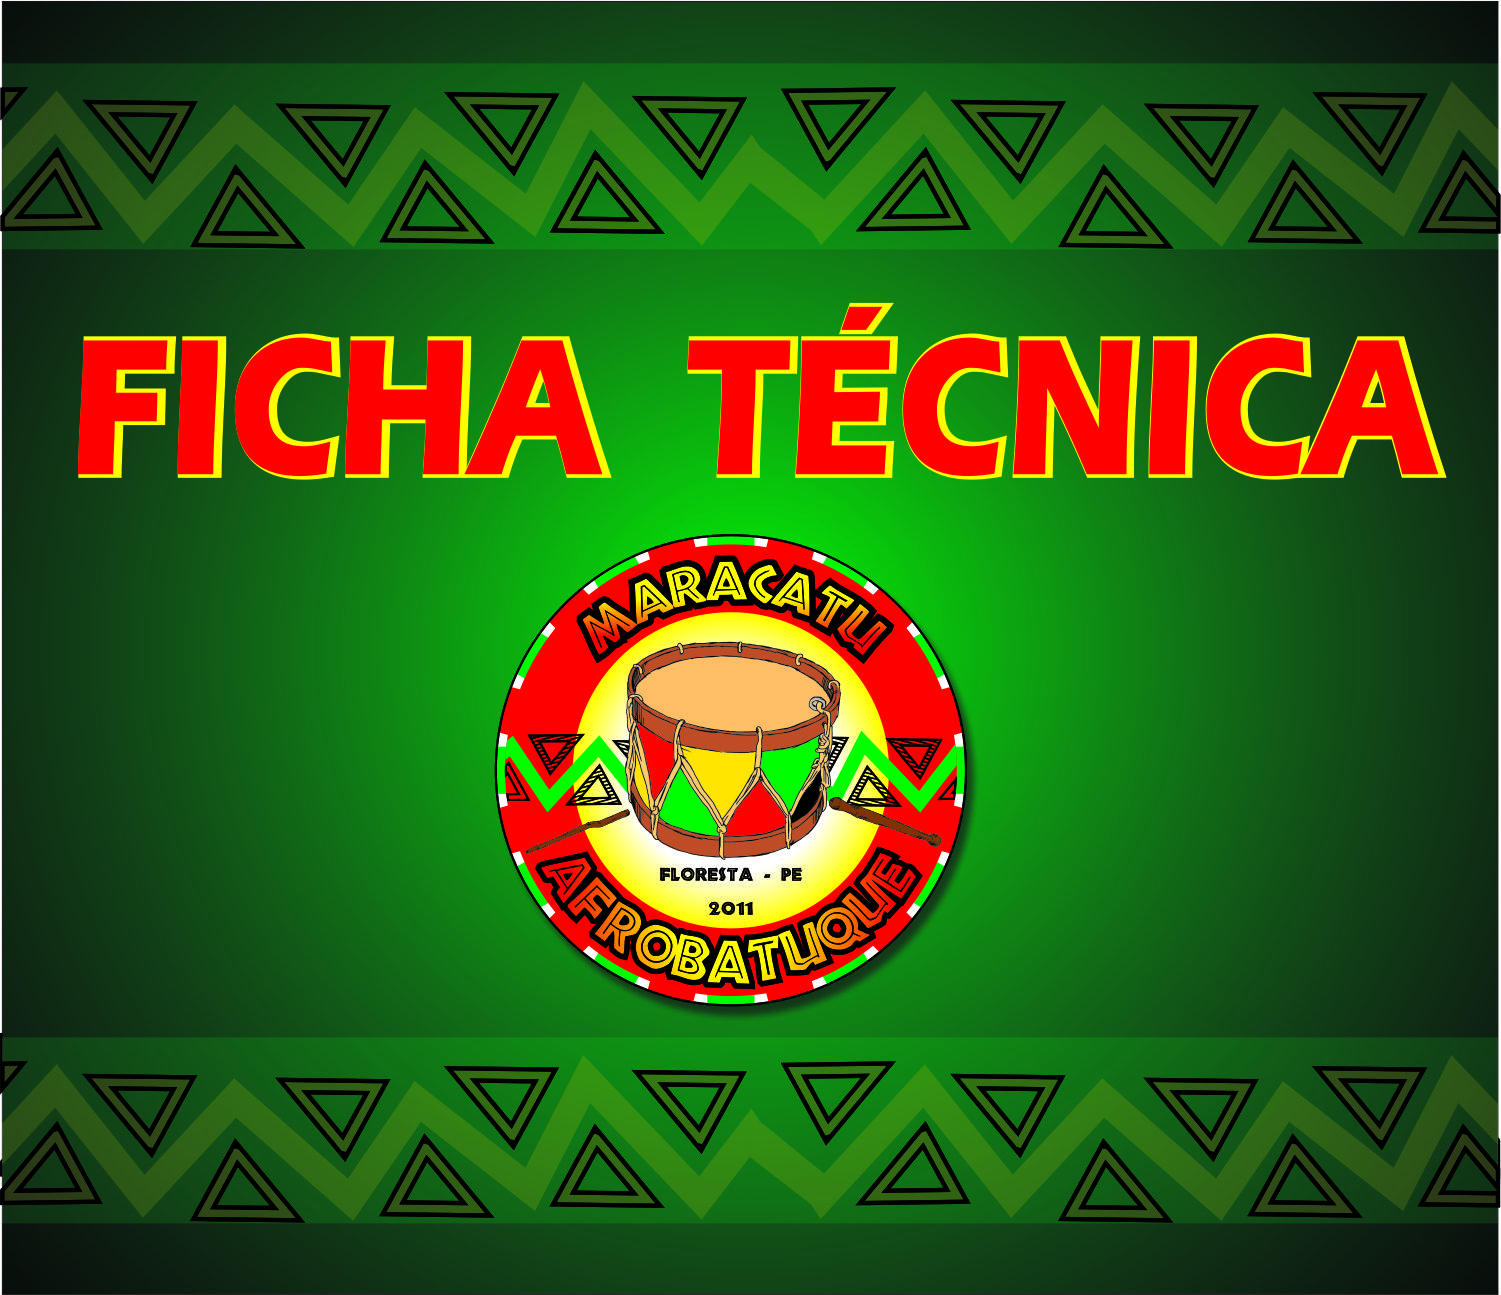 FICHA TÉCNICA DO GRUPO